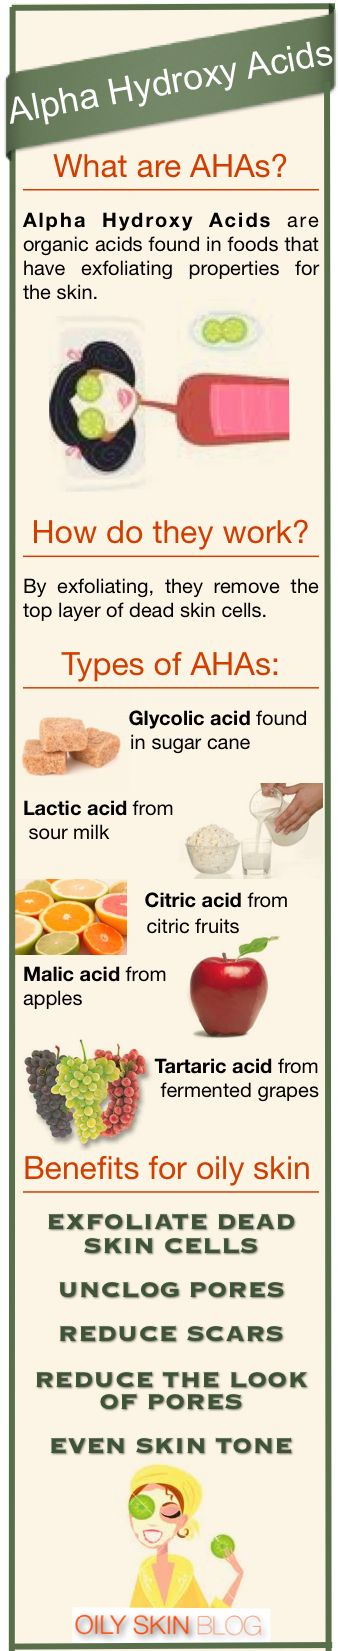 Alpha Hydroxy Acids #Arbonne uses these in our products! (contact Kimberley Miller-Medley on Pinterest)